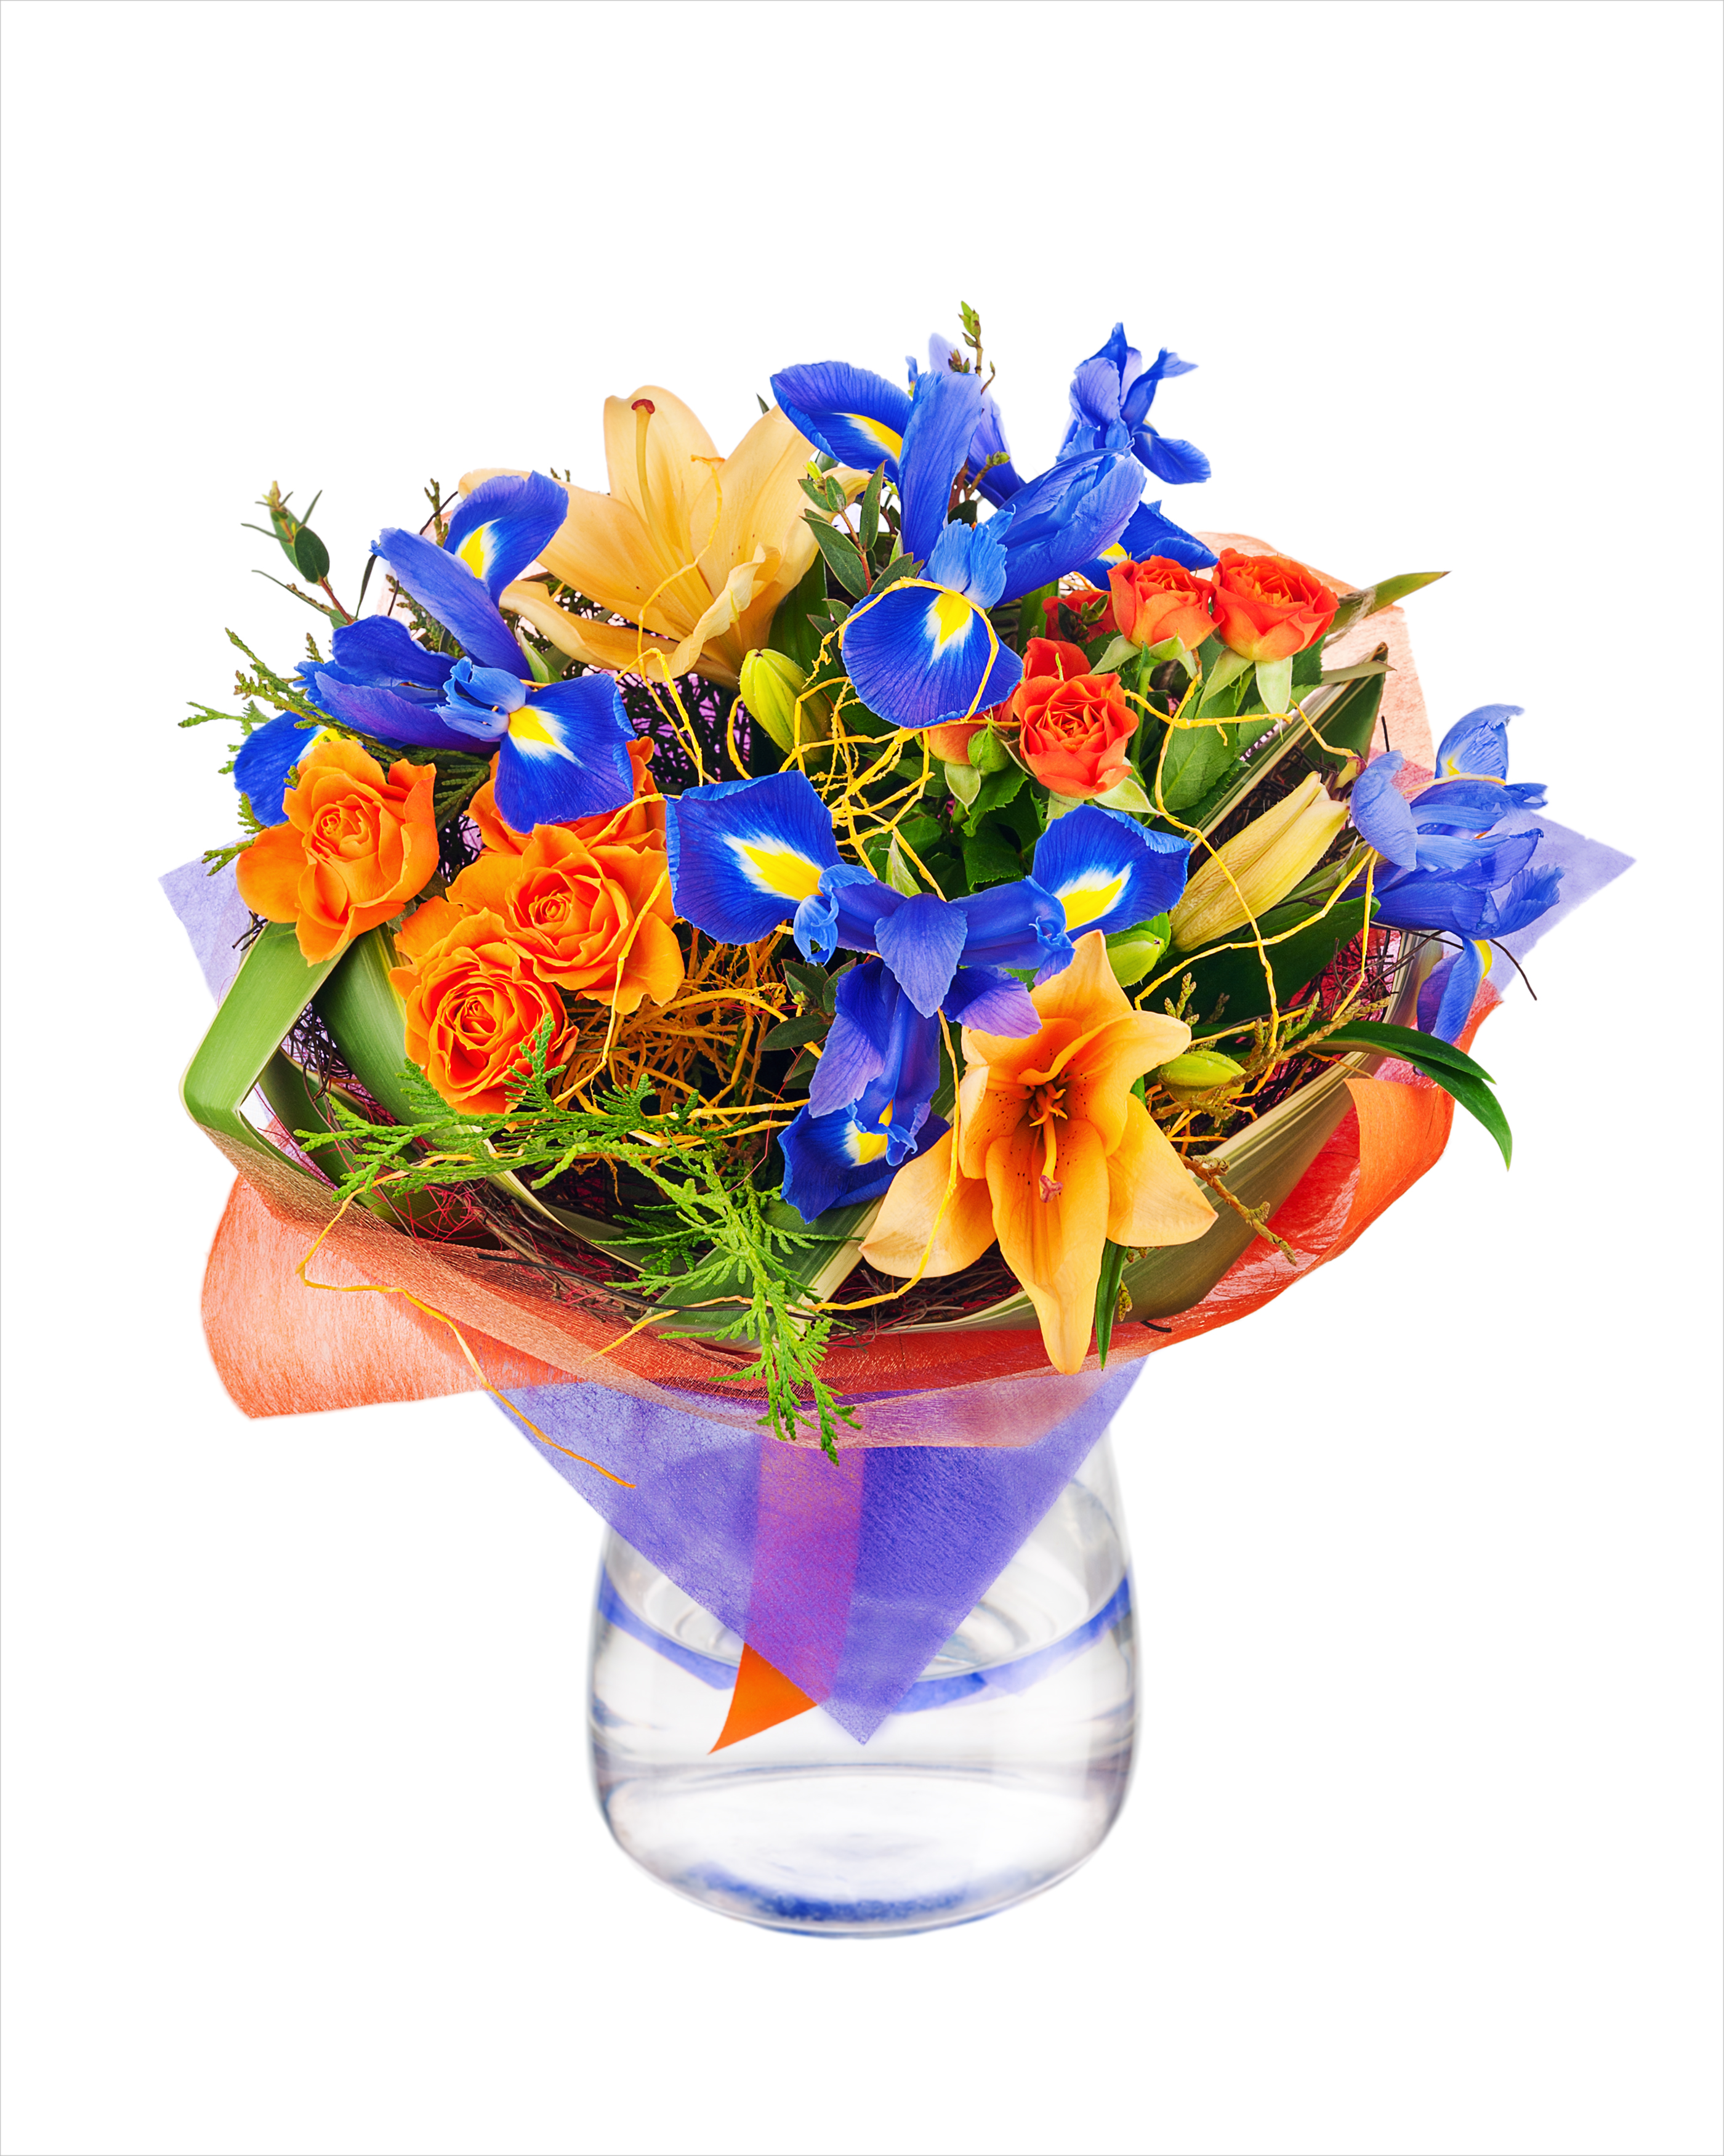 Irises dhalia fleuriste flower bouquet from roses lilies iris and other flowers in glass vase isolated on izmirmasajfo